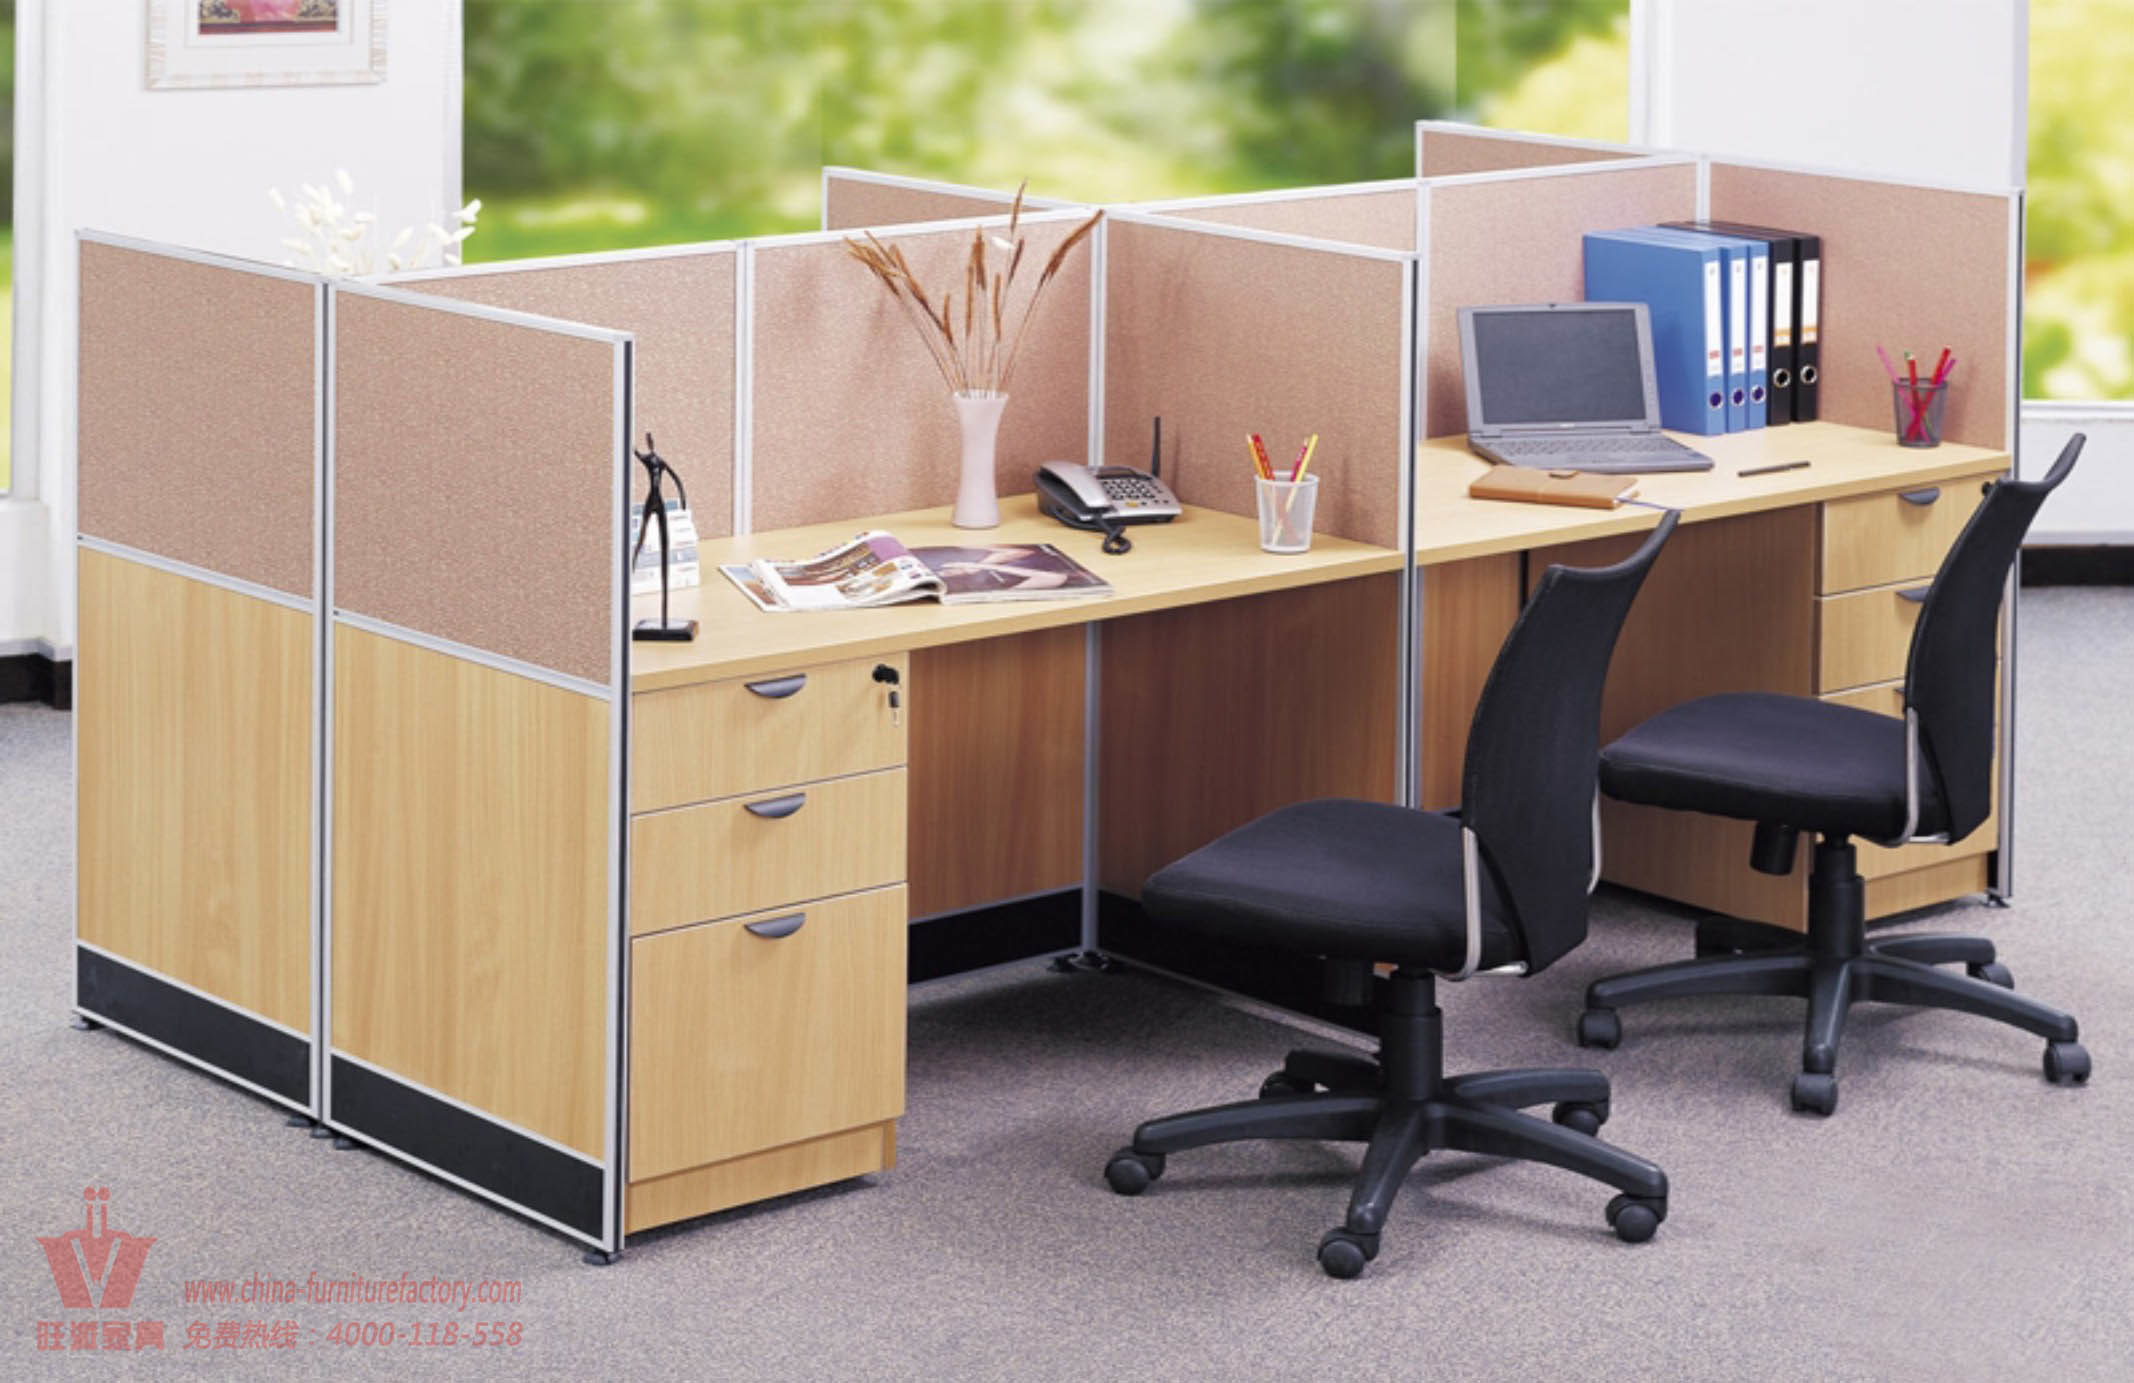 poste de travail moderne de bureau avec le service de bon wp2 2043 poste de travail moderne. Black Bedroom Furniture Sets. Home Design Ideas